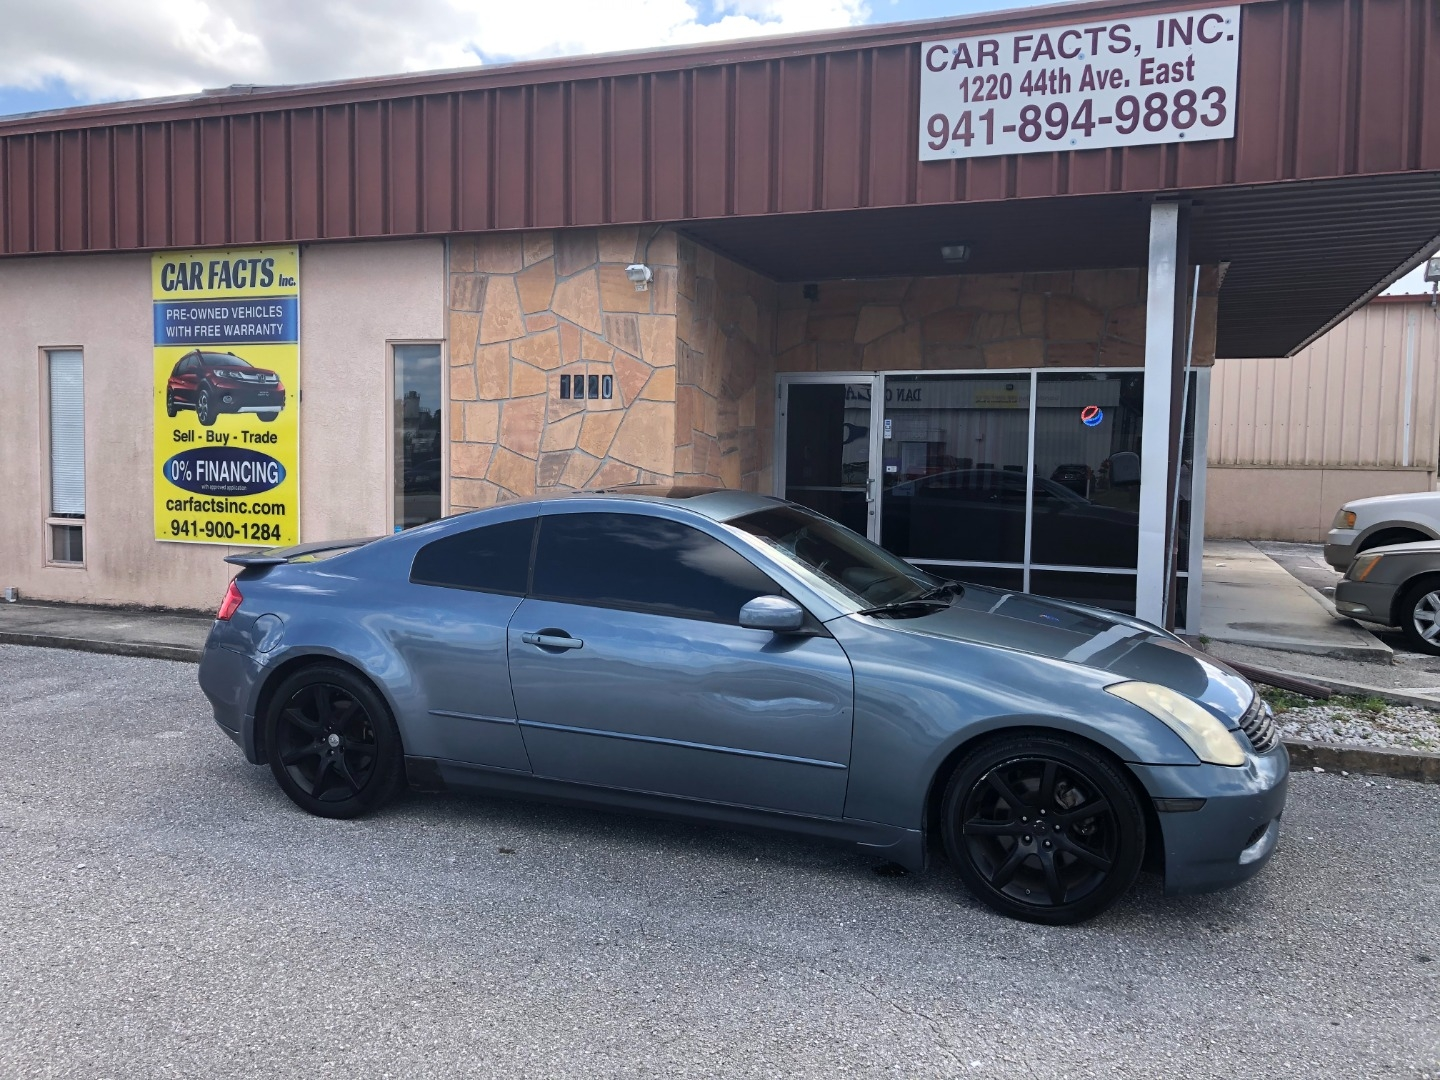 2006 Infiniti G35 Coupe 2dr Cpe Auto Car Facts Inc Dealership In Bradenton